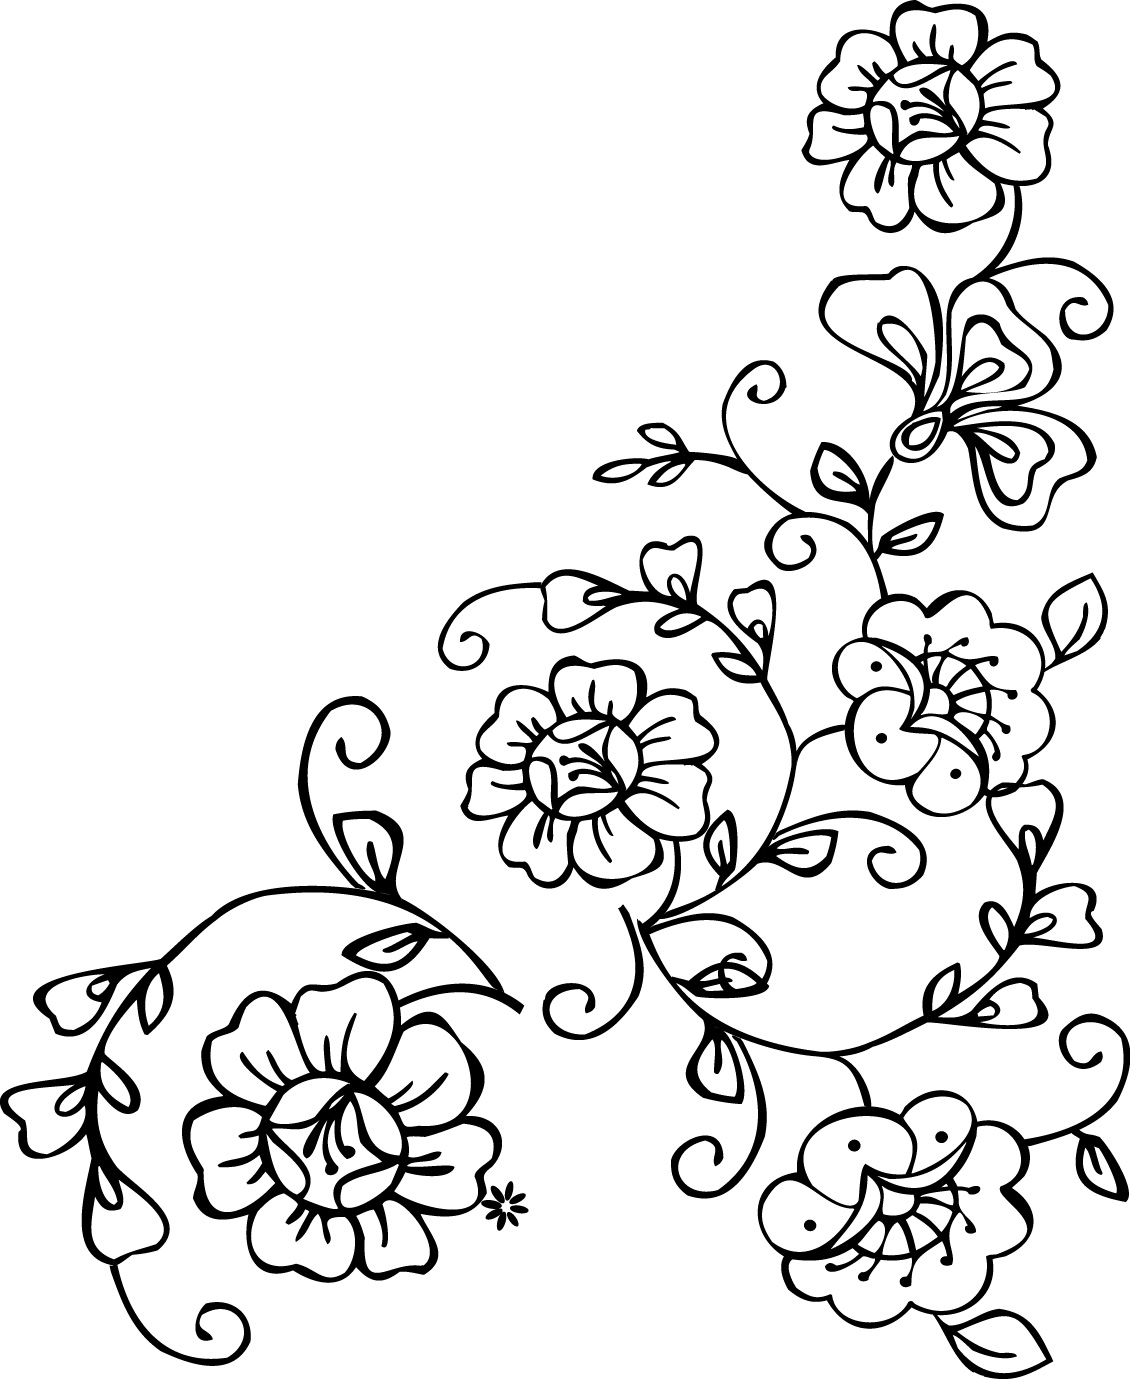 5 Best Images of Printable Paisley Stencil Designs - Free ...